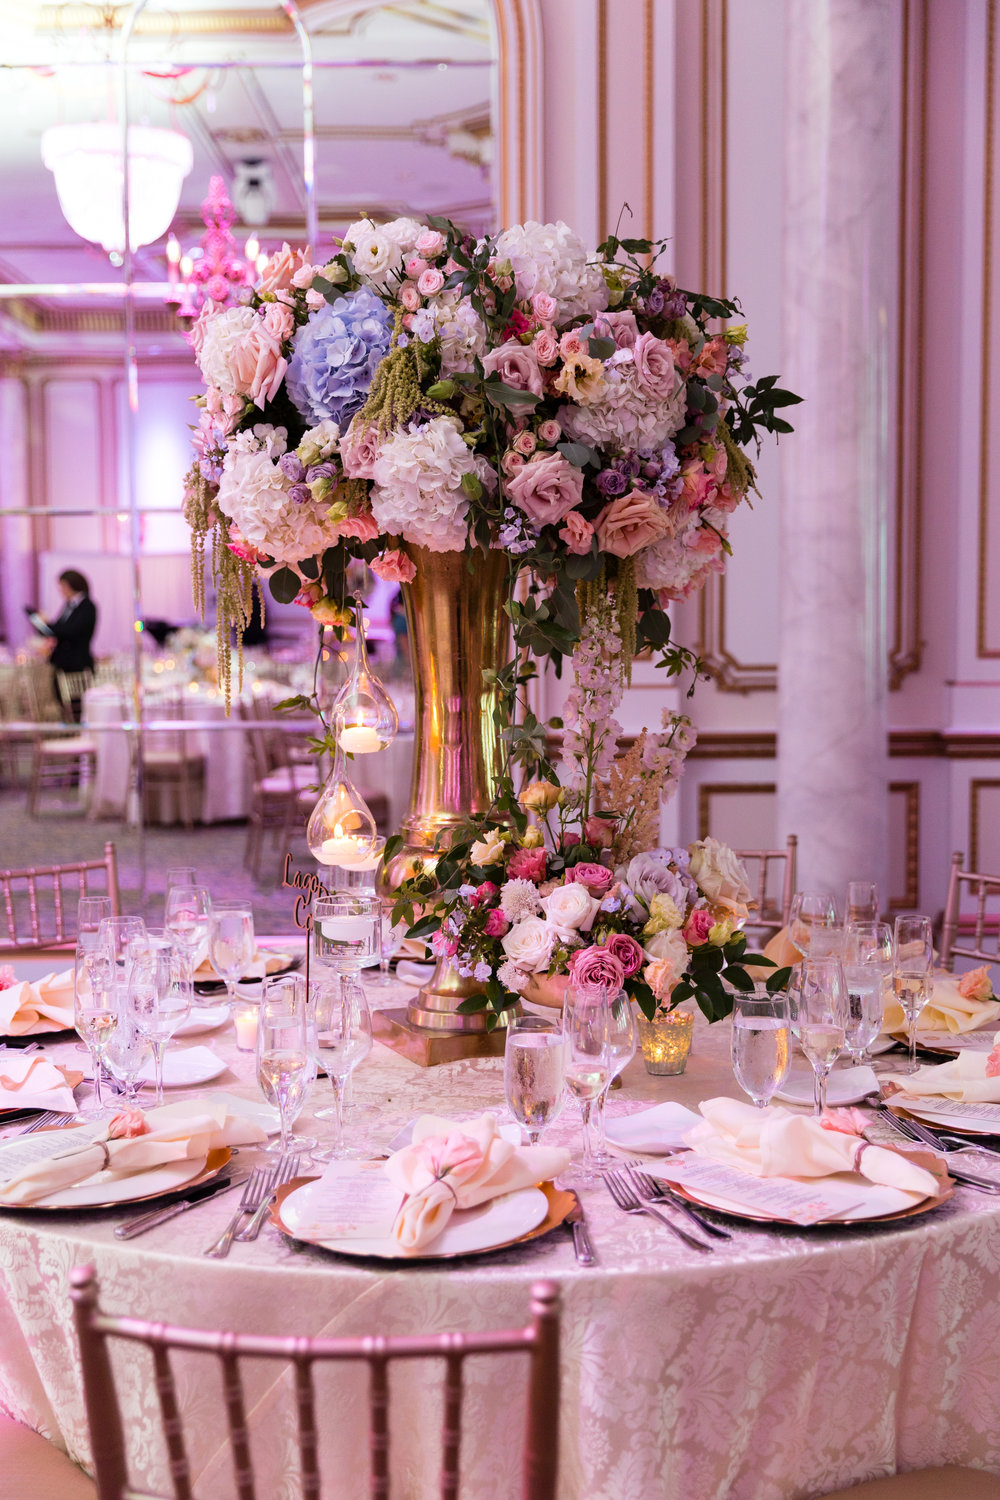 INDIAN WEDDING RECEPTION TABLE DECOR 2.jpg